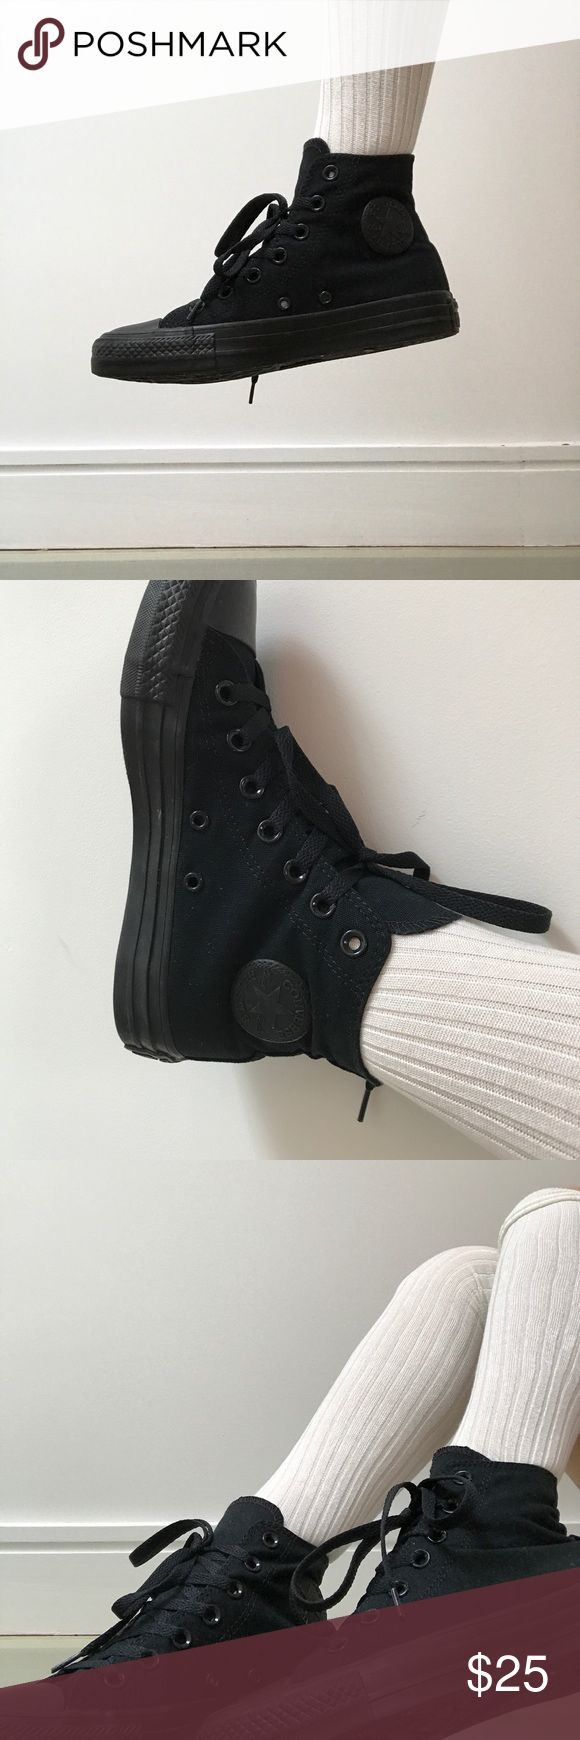 • Black high top chuck taylors All black high tops with classic converse logo  Super comfortable  Goes with anything Worn once Converse Shoes Sneakers